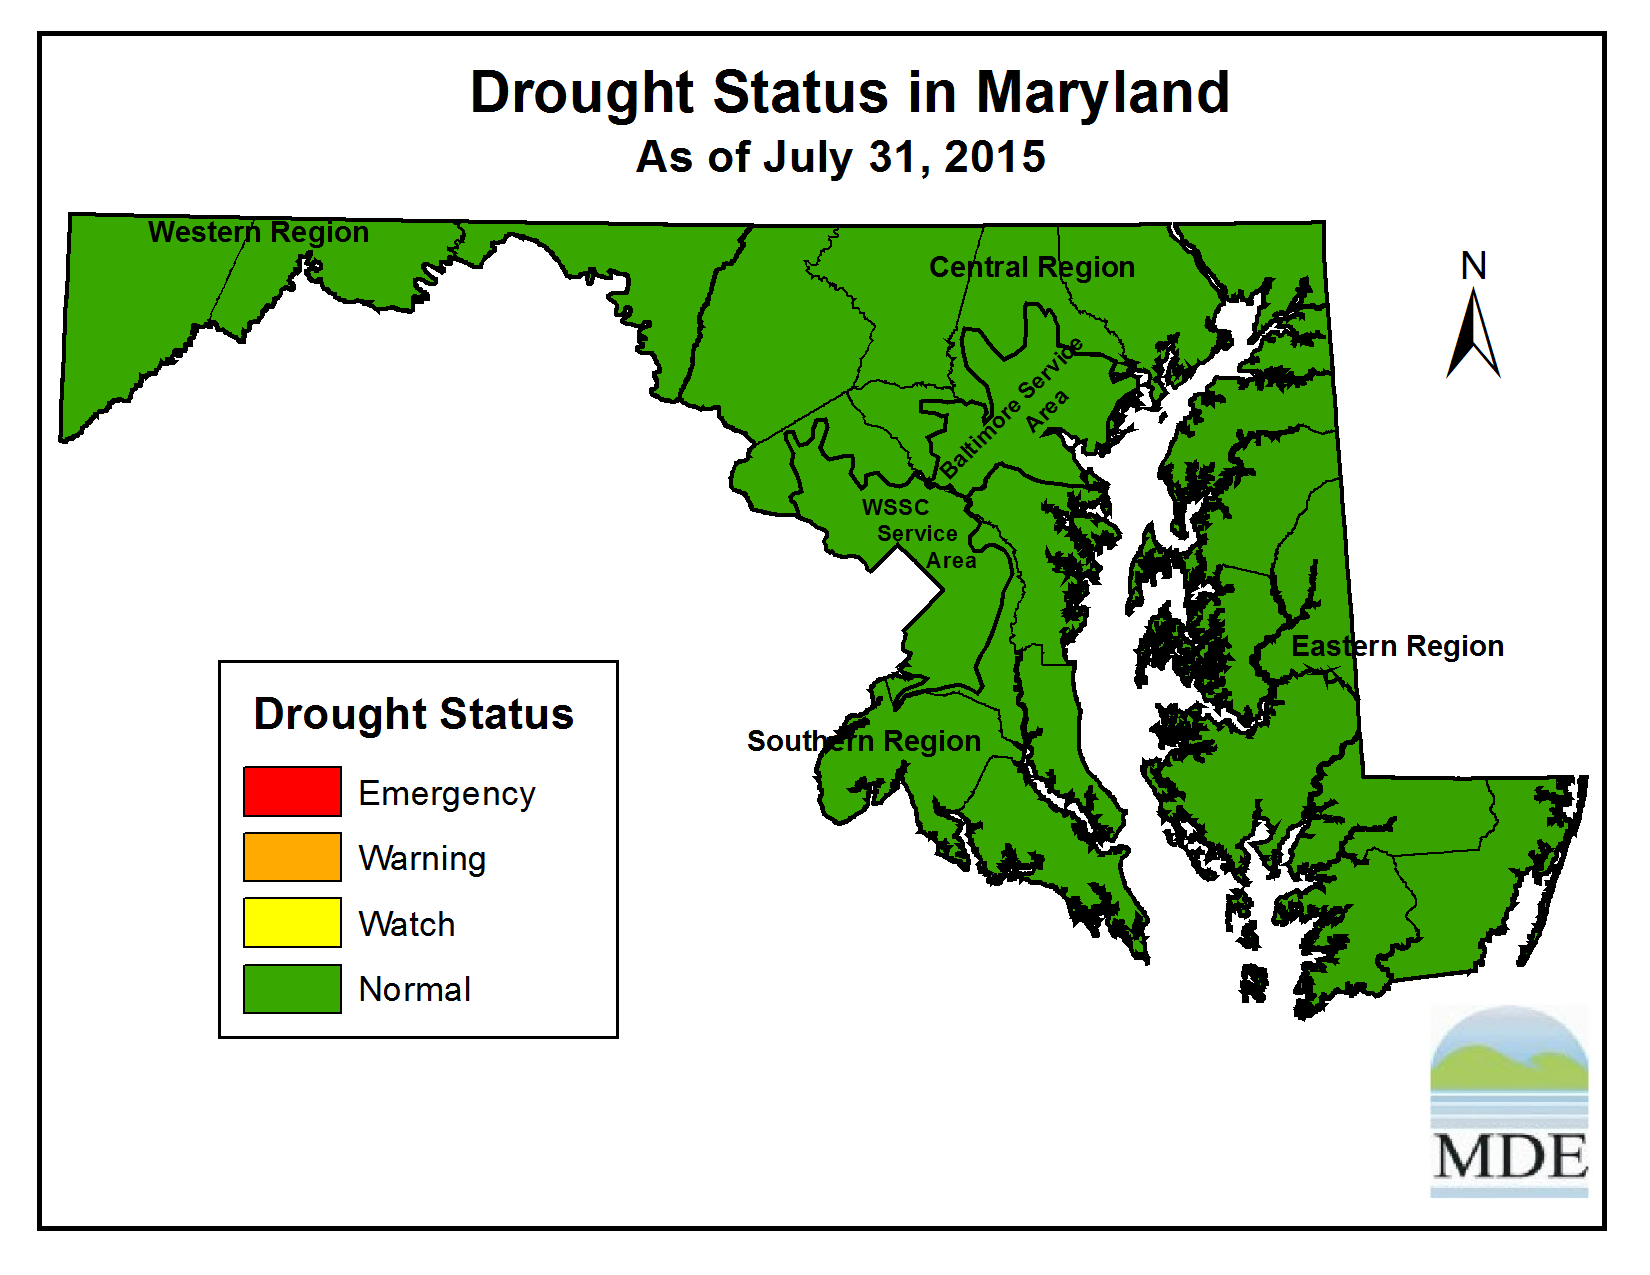 Drought Status as of July 31, 2015